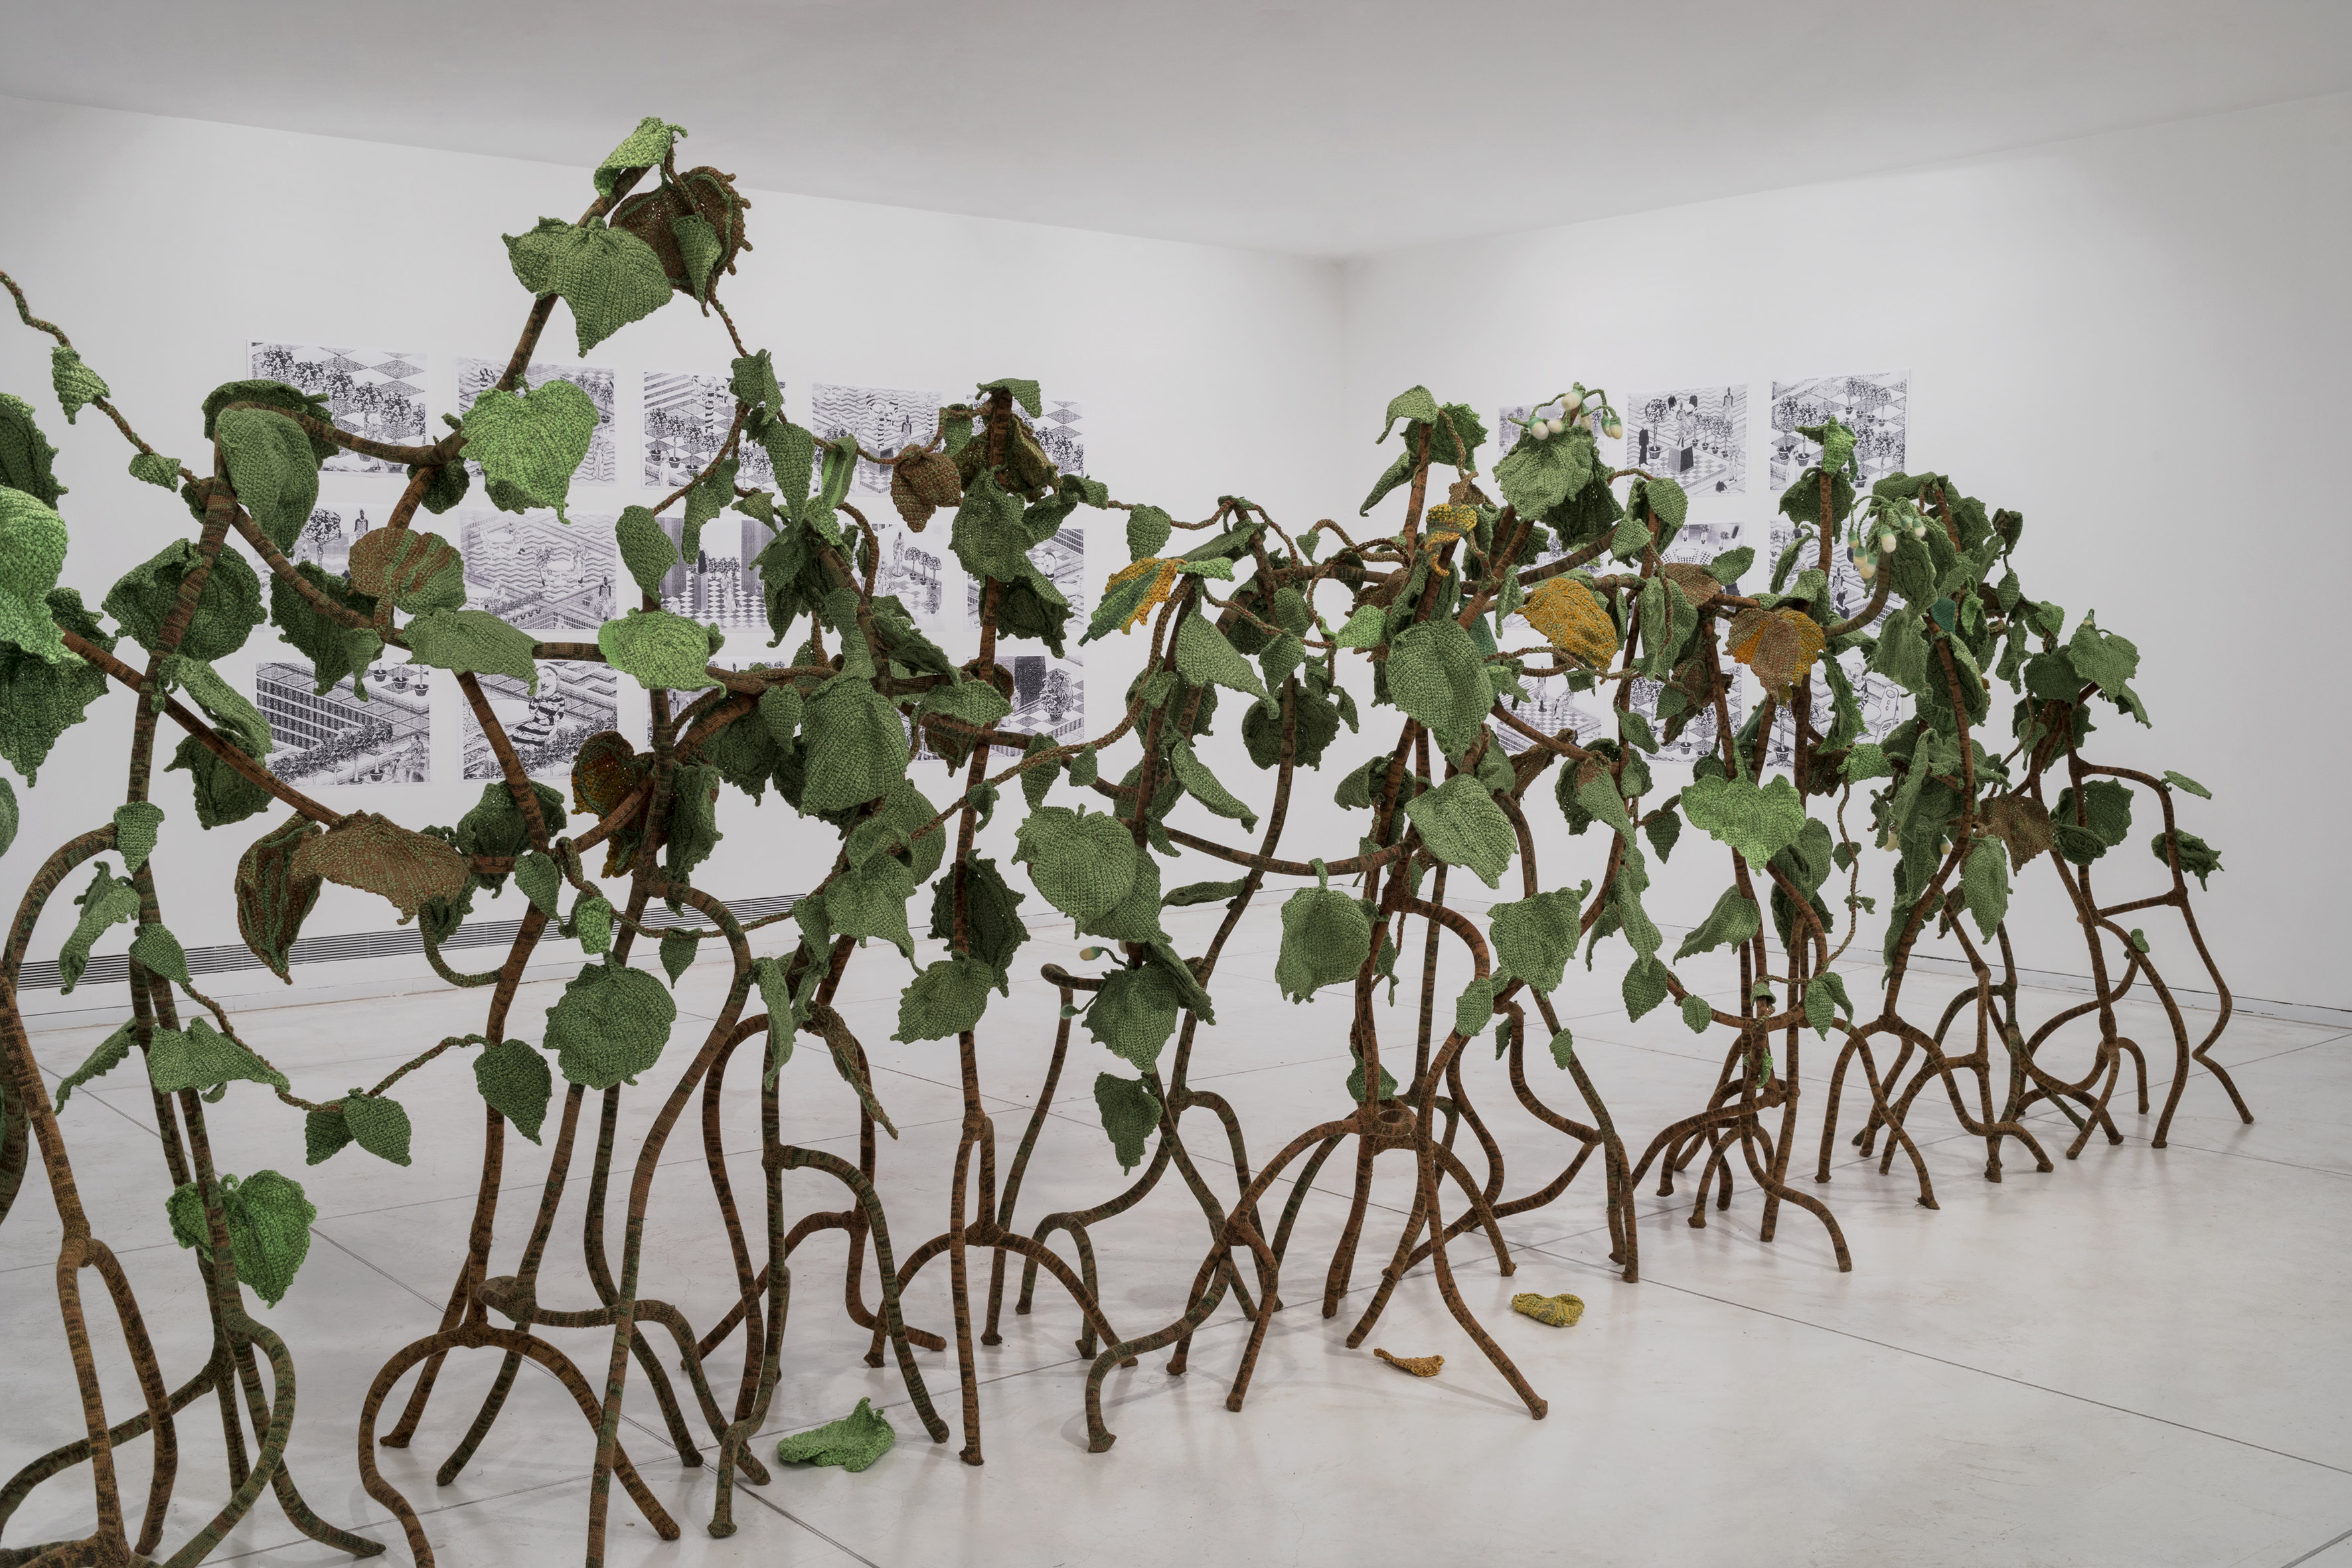 This knitted Hedgerow was created in collaboration with Kuchinate collective - a collective of African Women asylum seekers in Israel who knit for their living, along with 265 volunteers. It reflects on an archival document from 1944 in which the commander of Auschwitz ordered his troops to create a hedgerow which will cover the gas chambers of the camp.